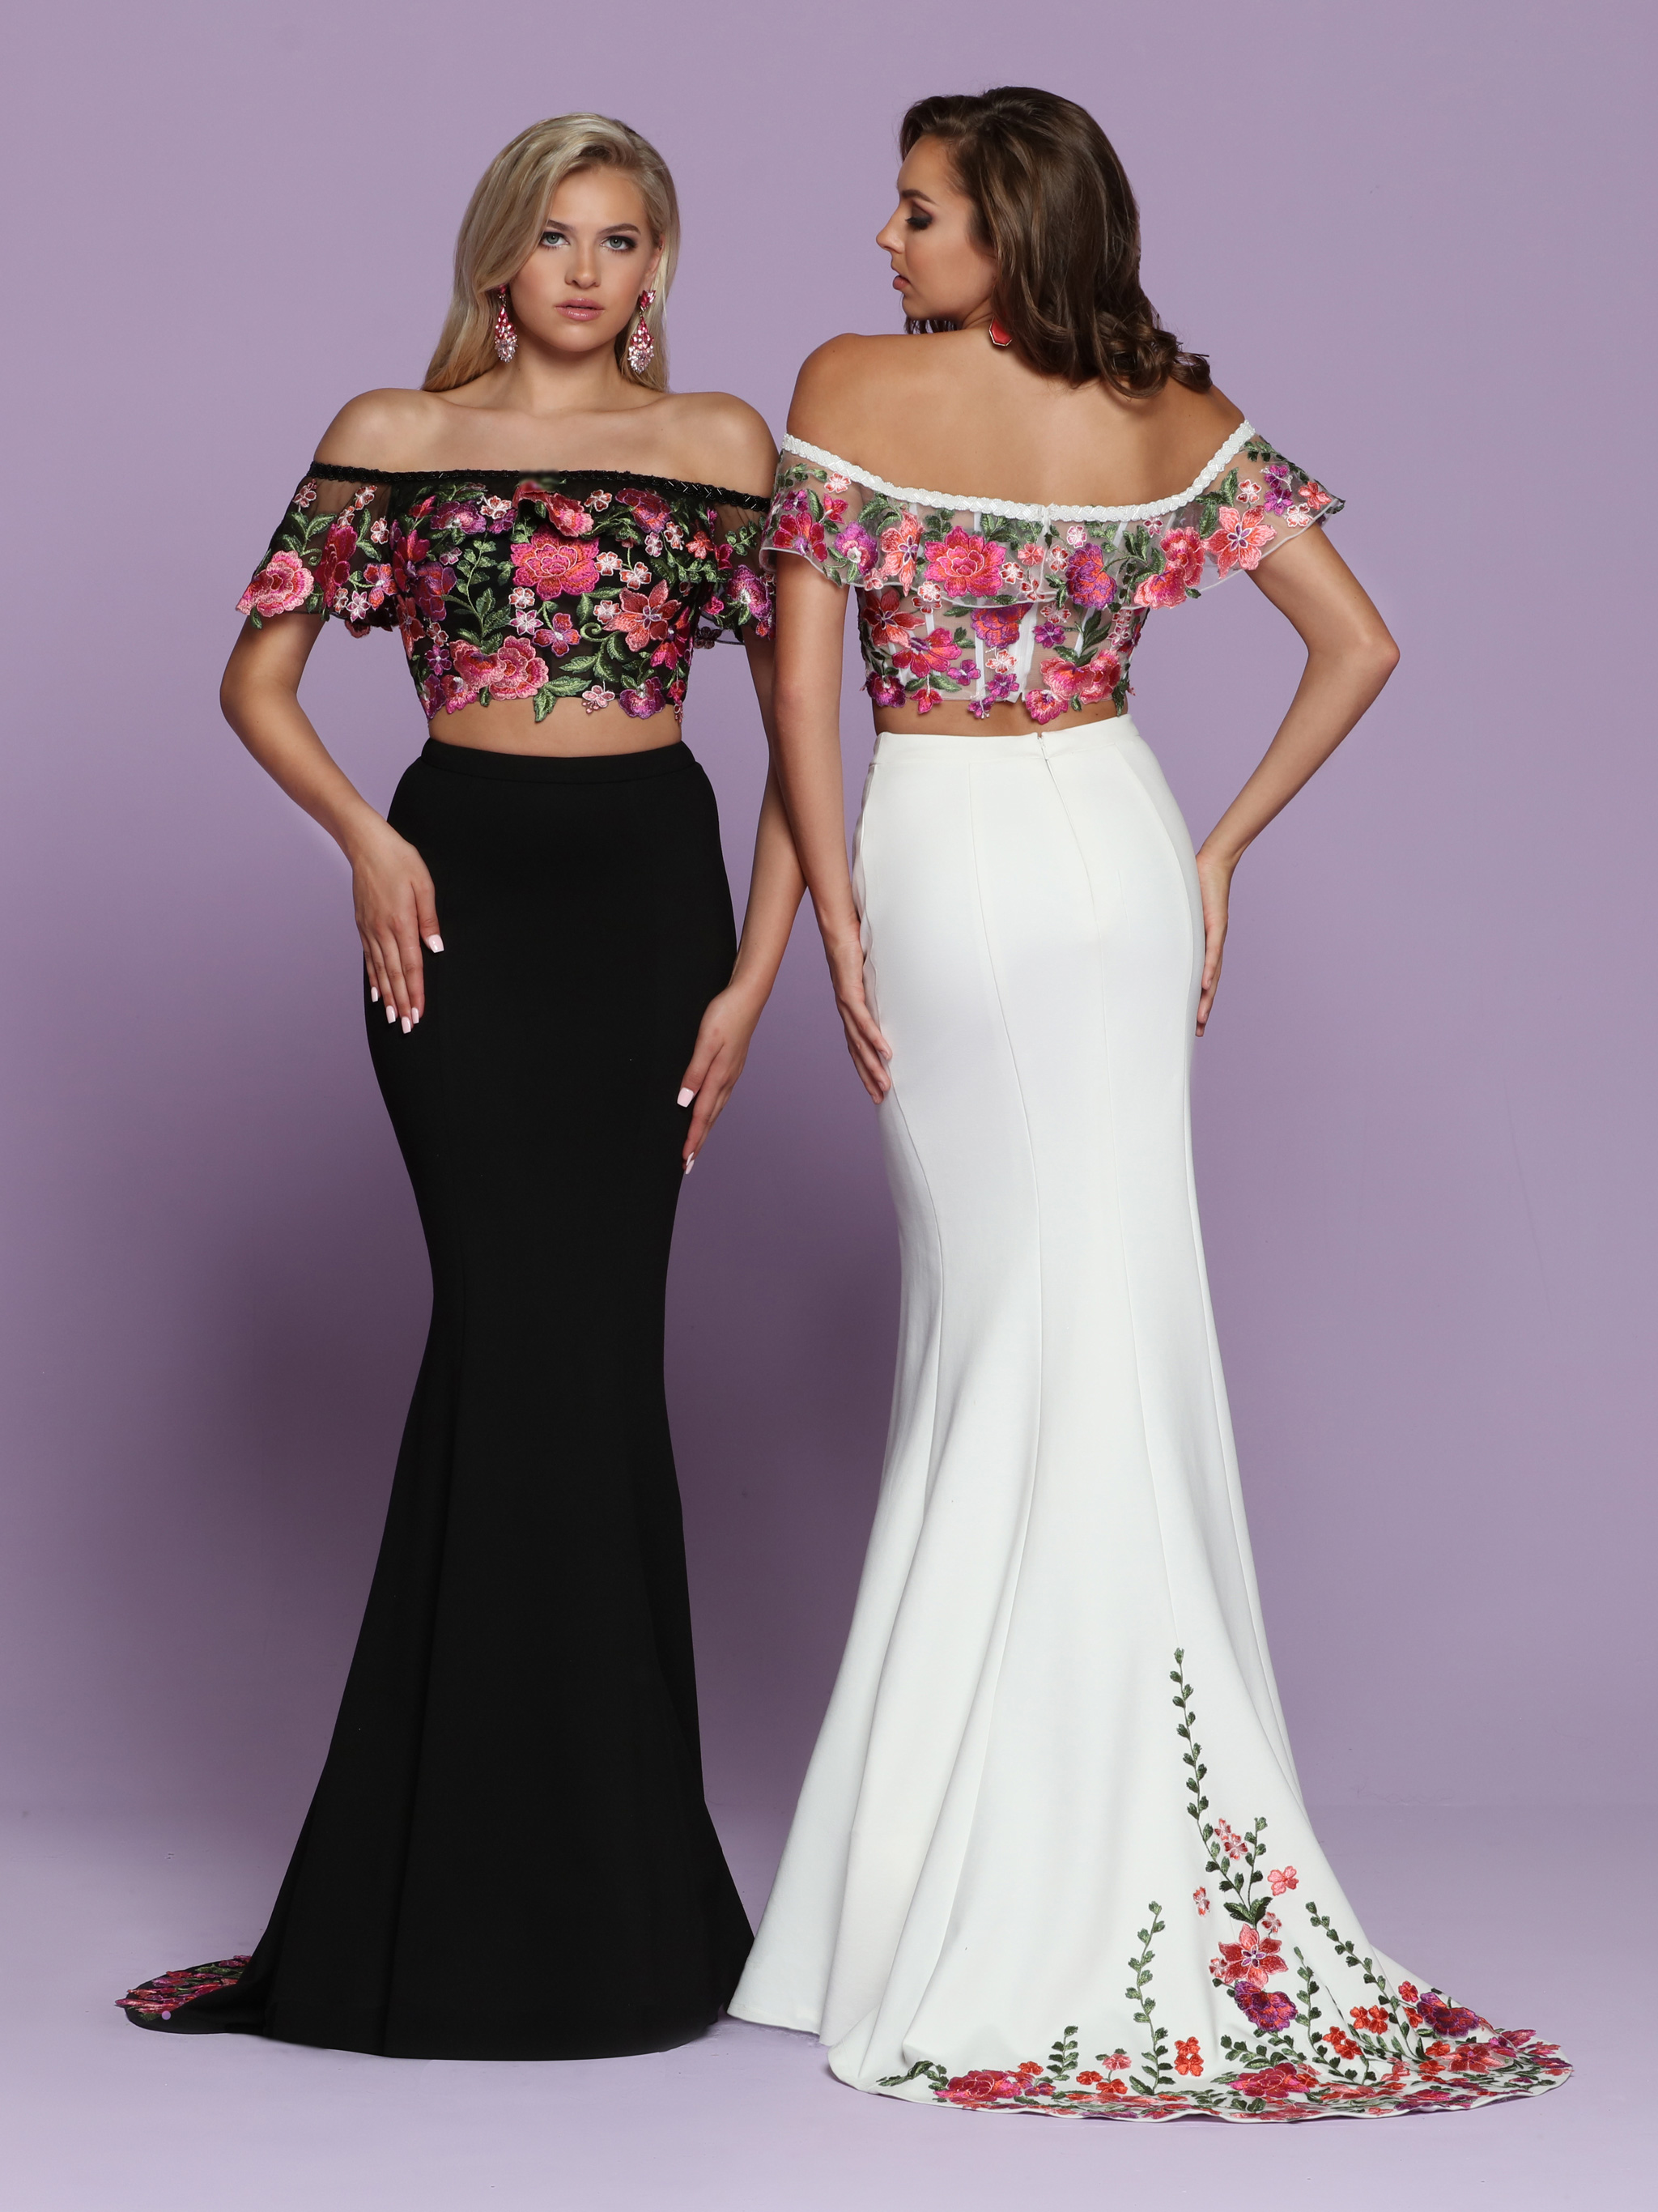 Top Prom Dress Trends for 2021 – Sparkle Prom Blog